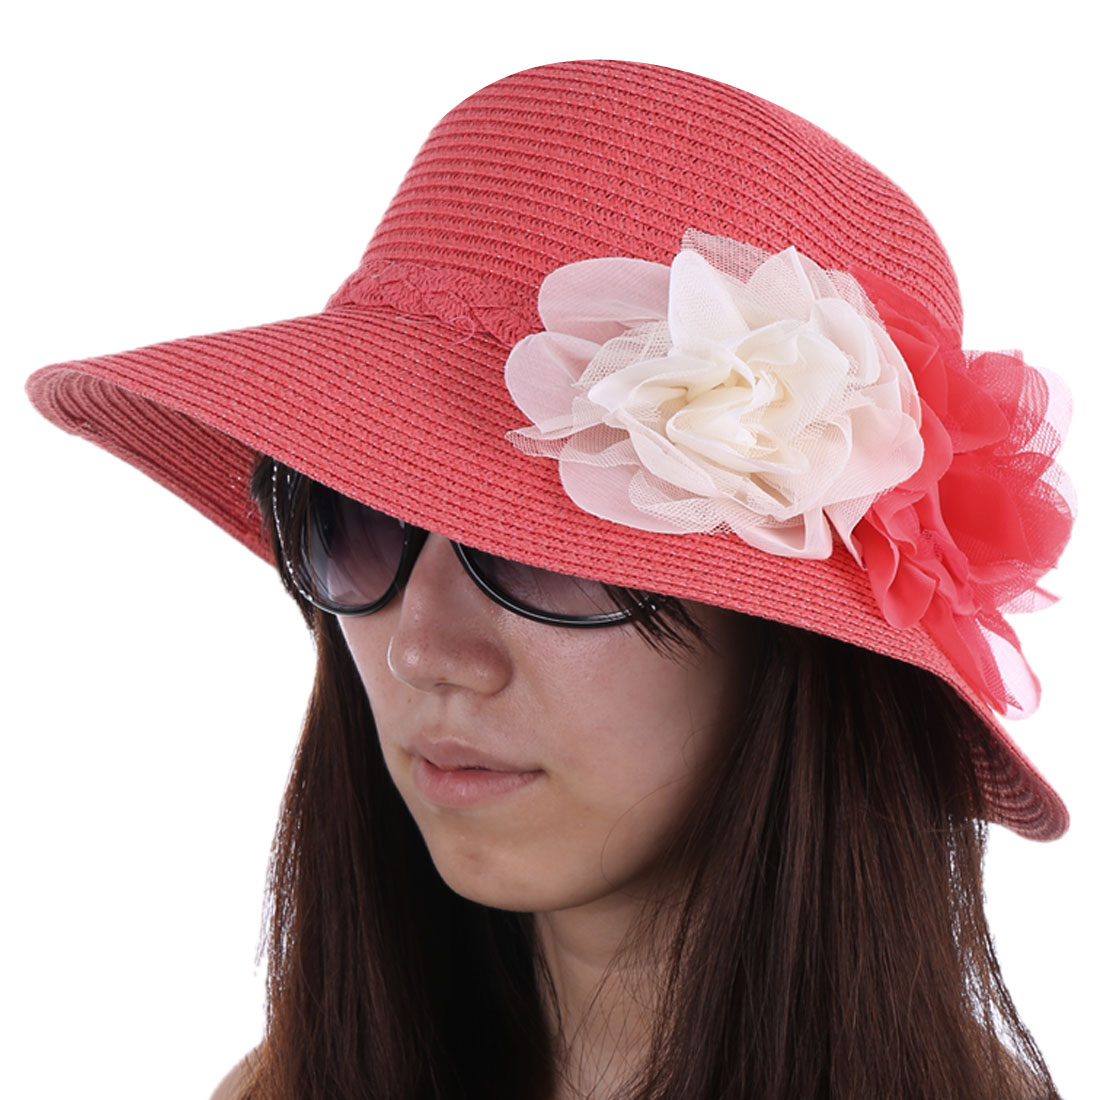 Ladies Chic Two Handmade Flowers Decor Fuchsia Straw Woven Sun Hat